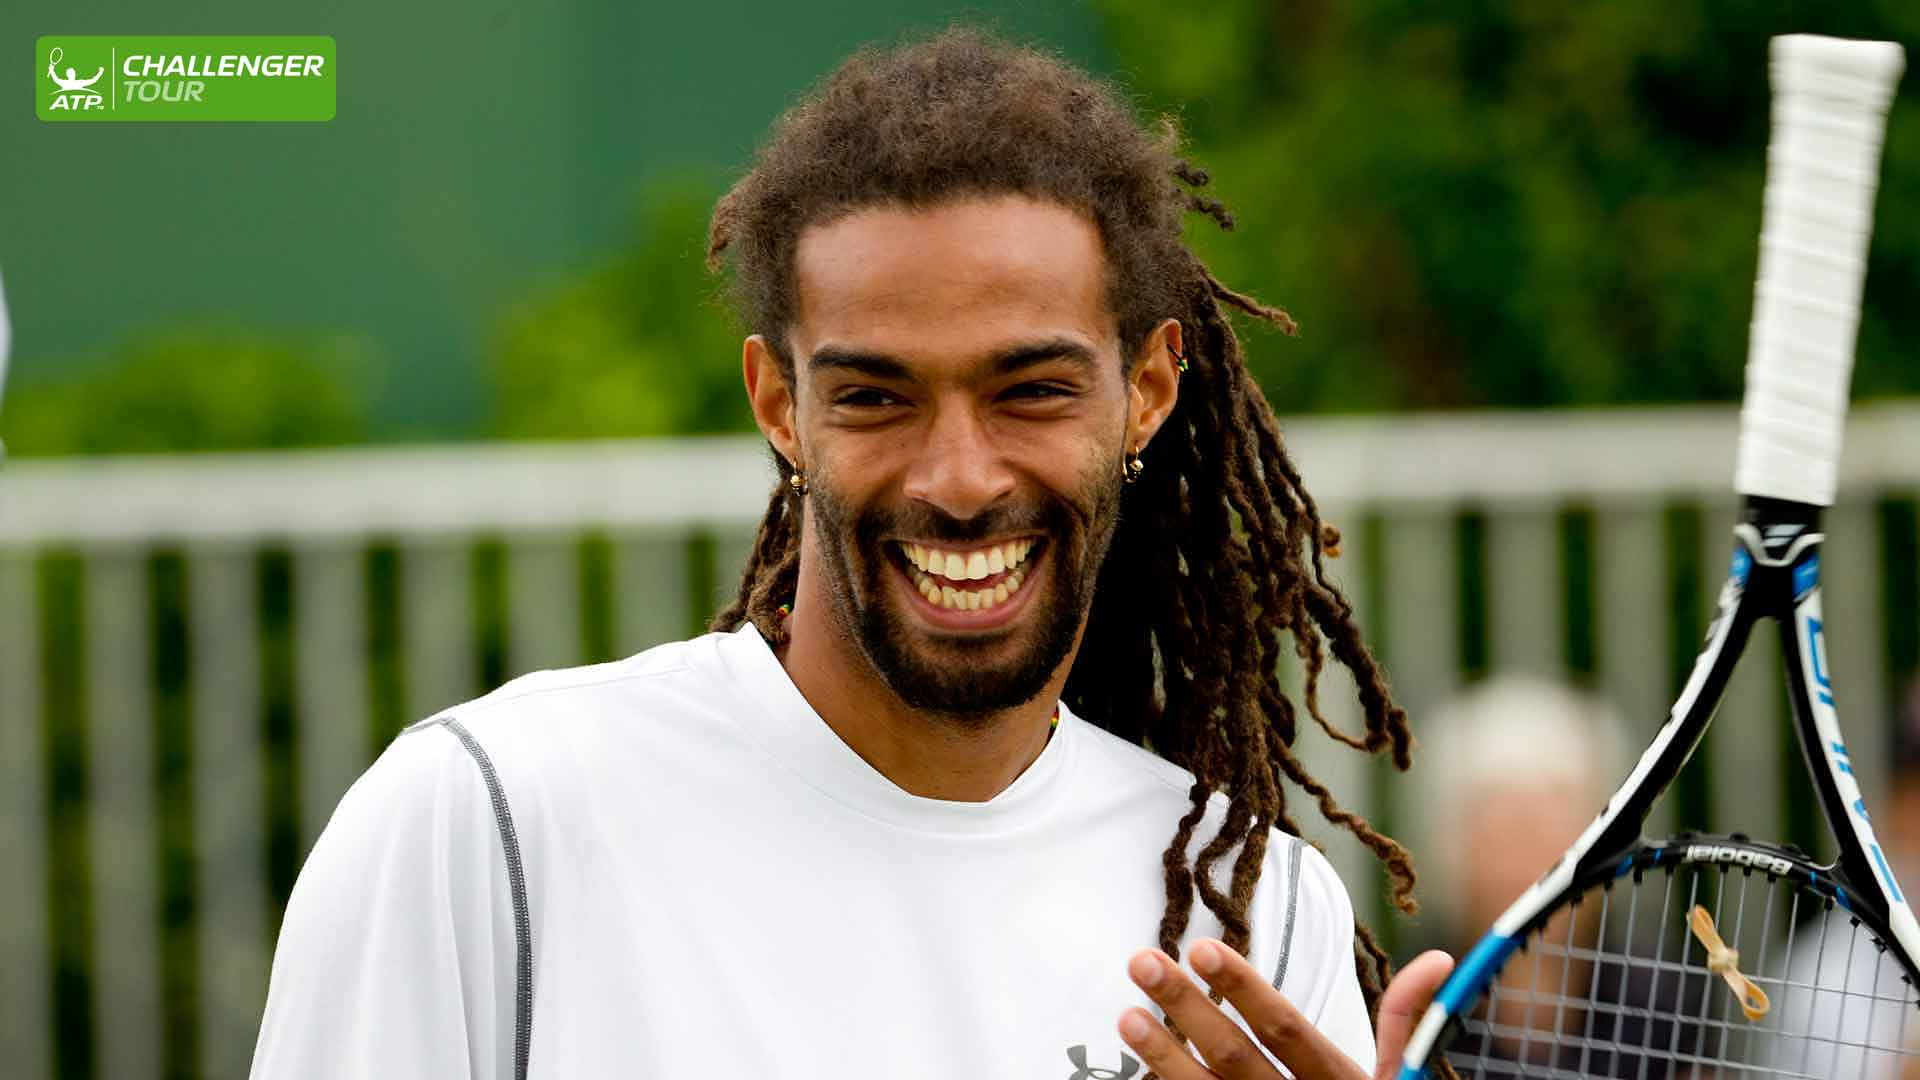 Dustin Brown is getting his grass court season off to a great start at the ATP Challenger Tour event in Manchester.